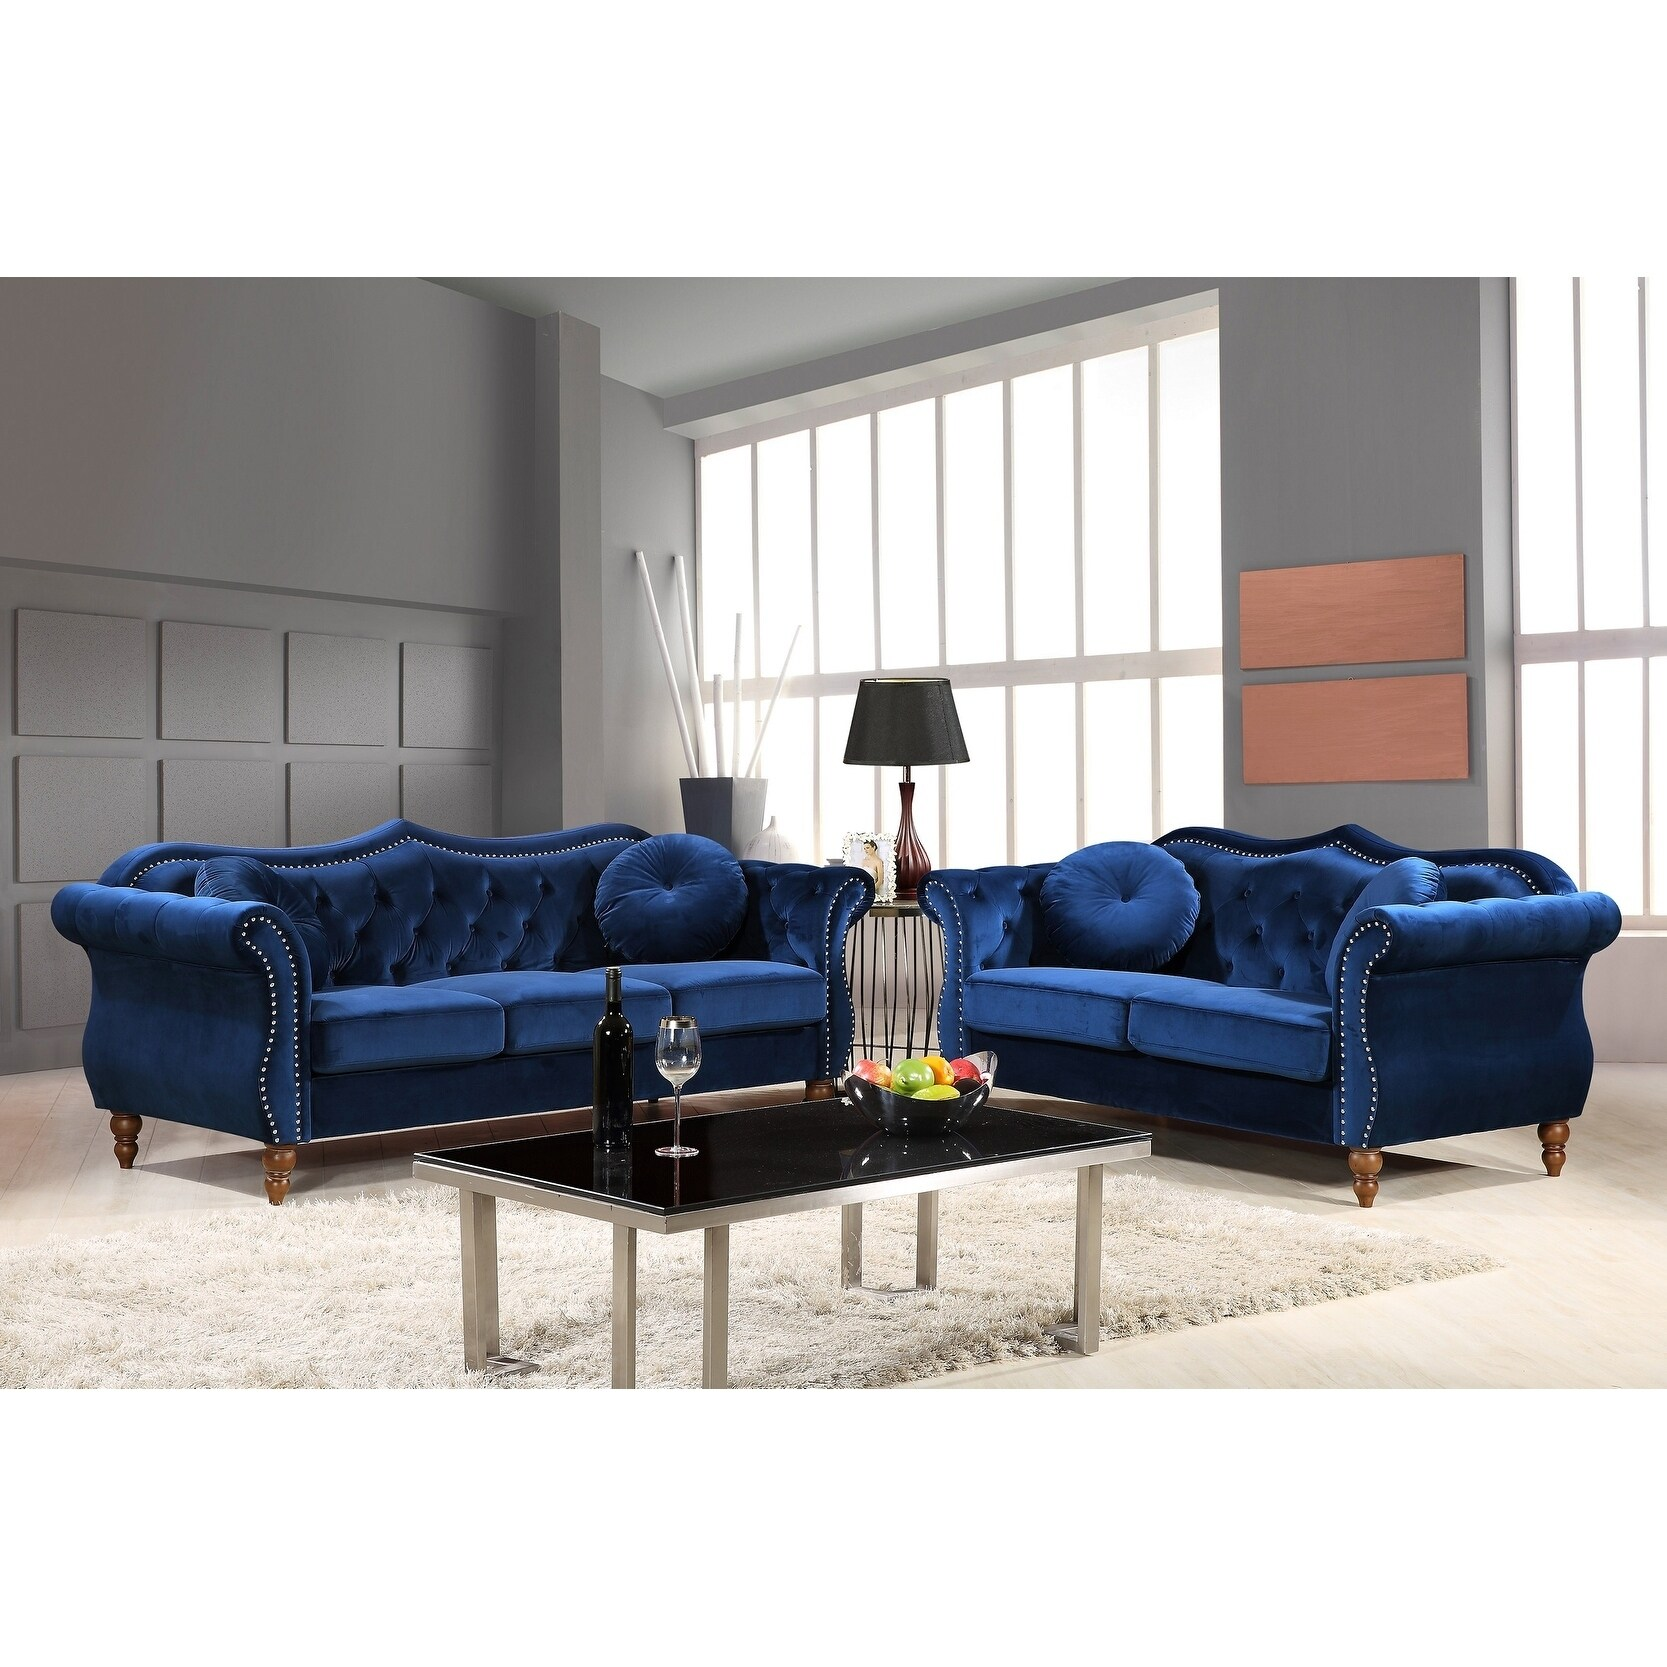 Superieur Gracewood Hollow Mantel Mid Century Nailhead Chesterfield Sofa Set